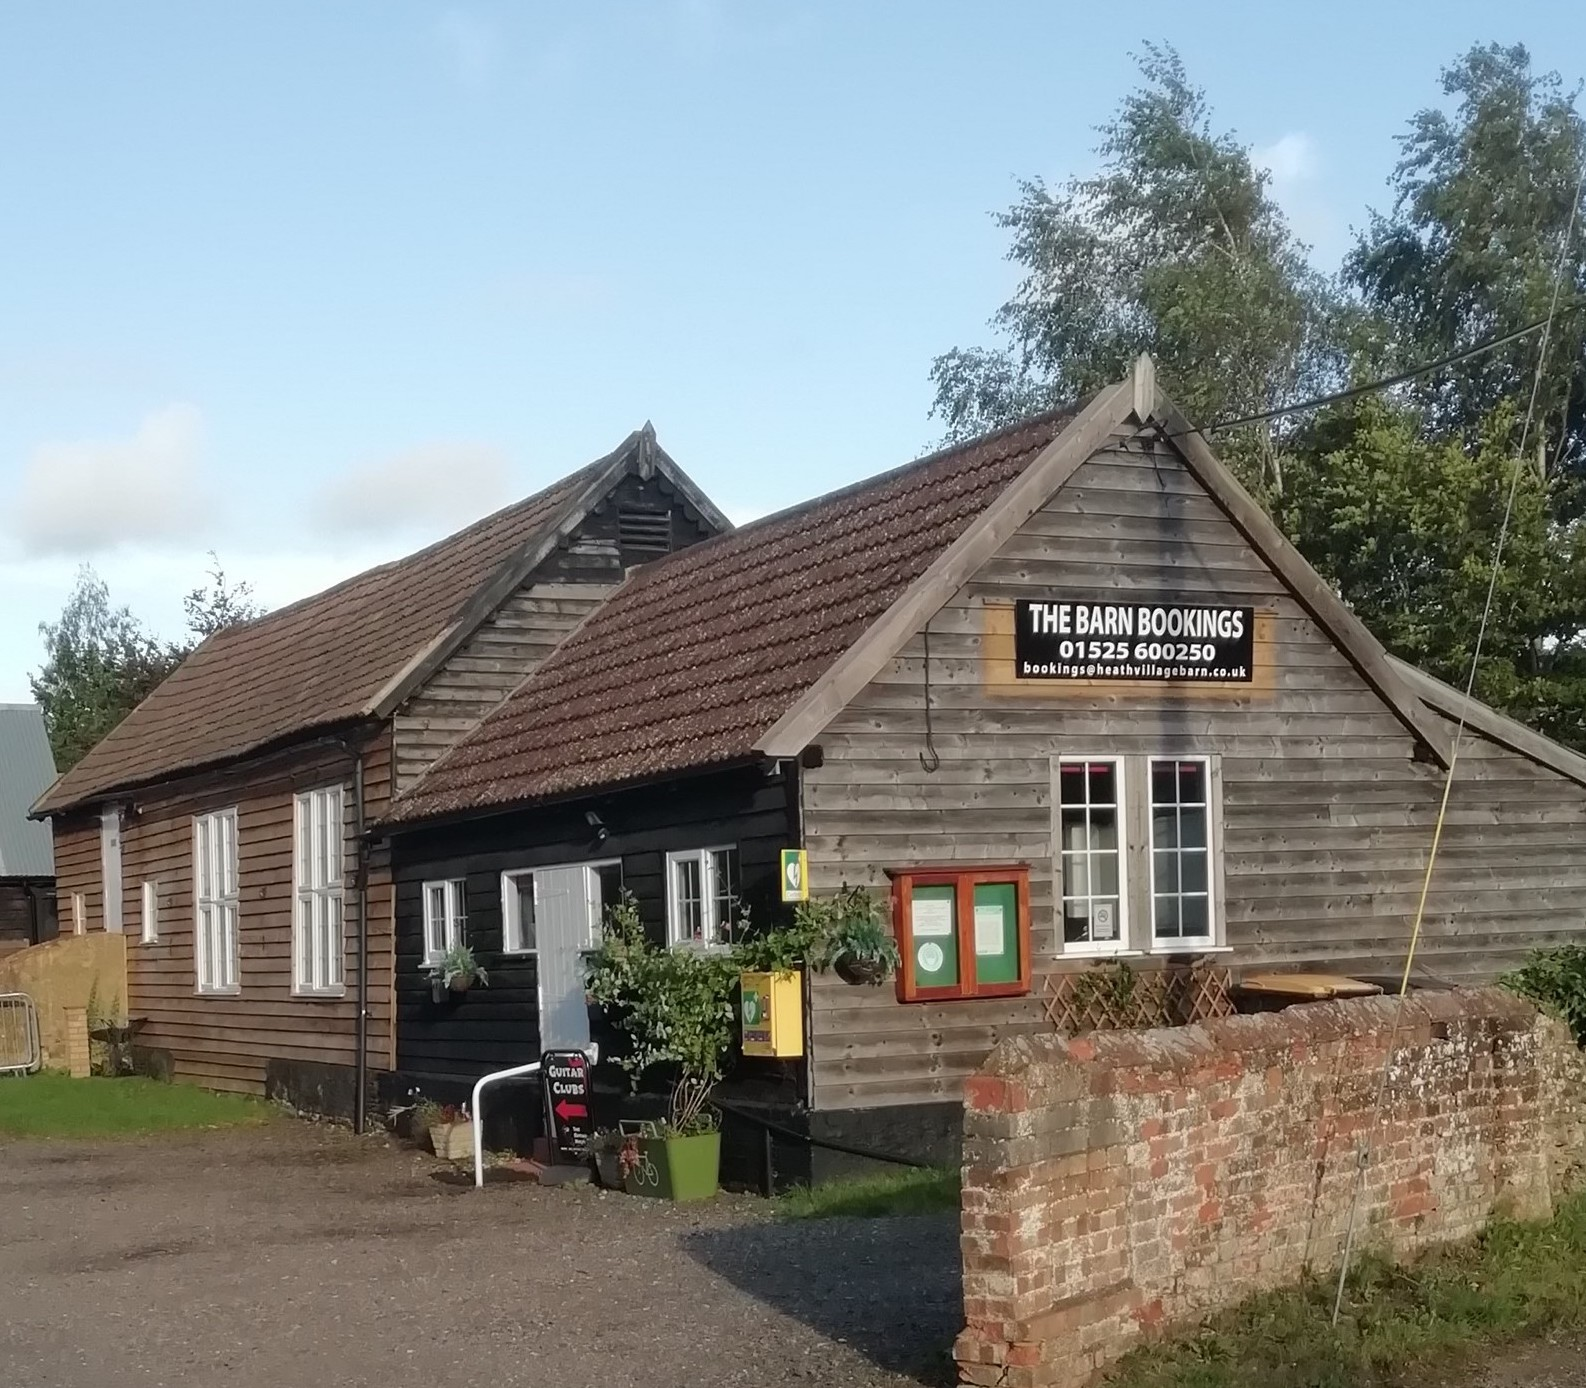 Heath Village Barn - with the new sign